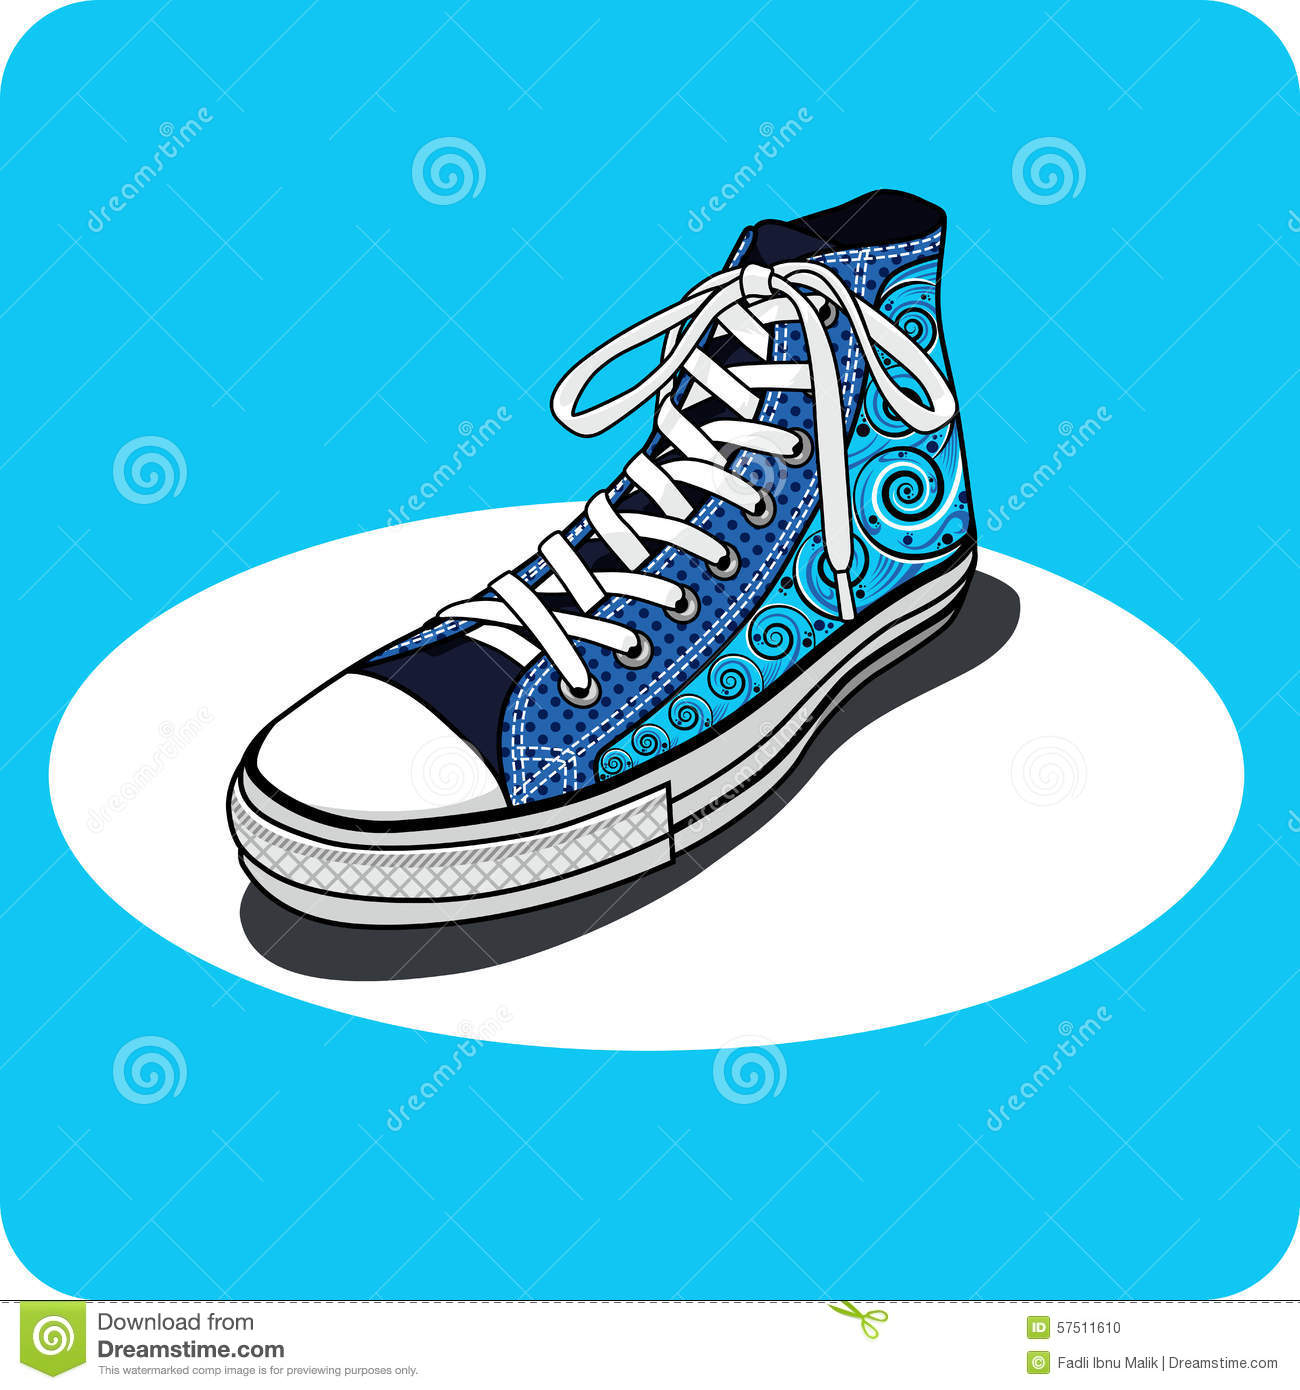 Stock Illustration Converse All Shoes Star Illustration Of tWO0tqP